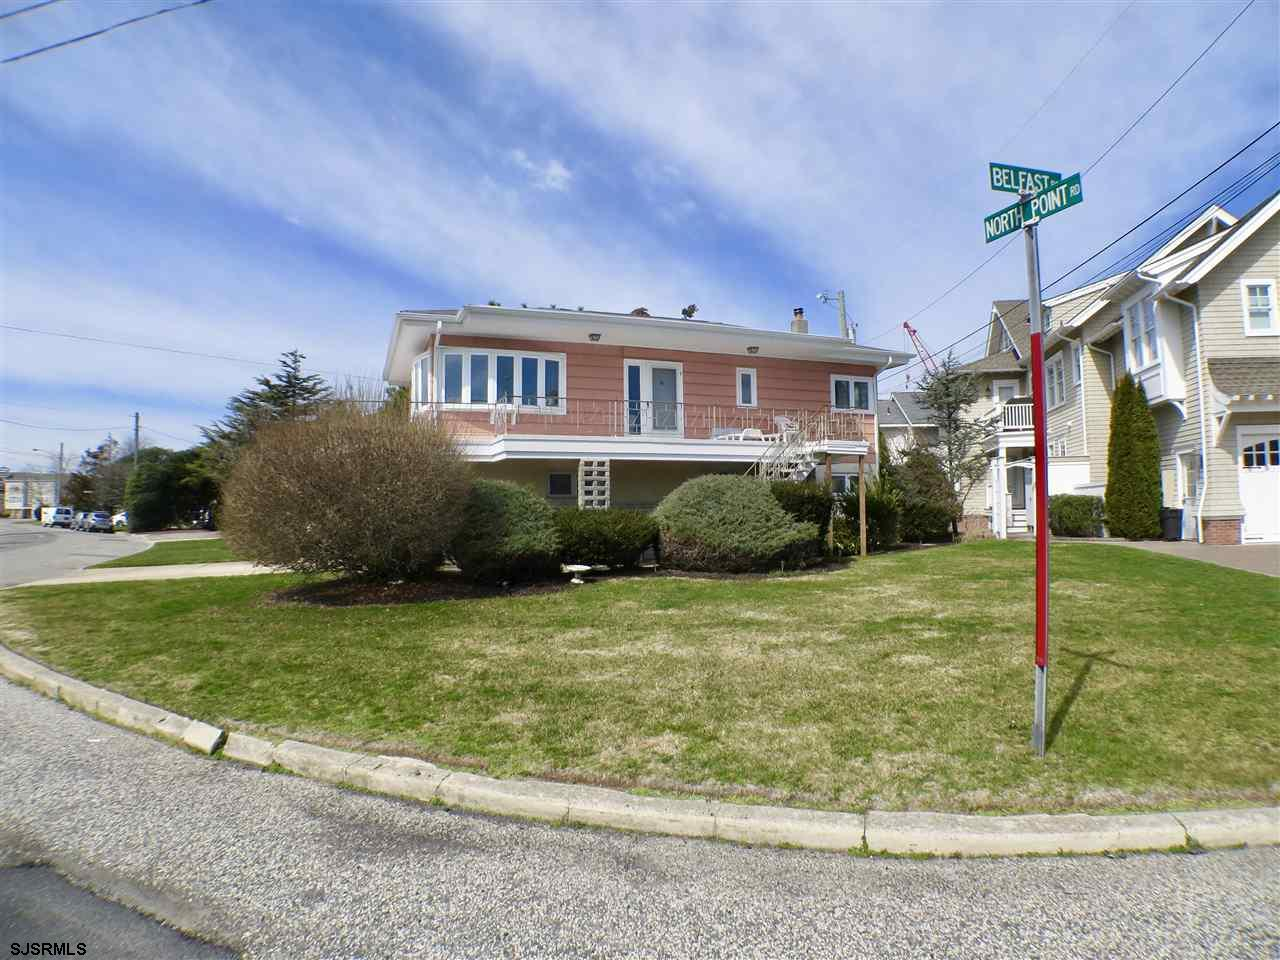 220 North Point Road - Picture 1